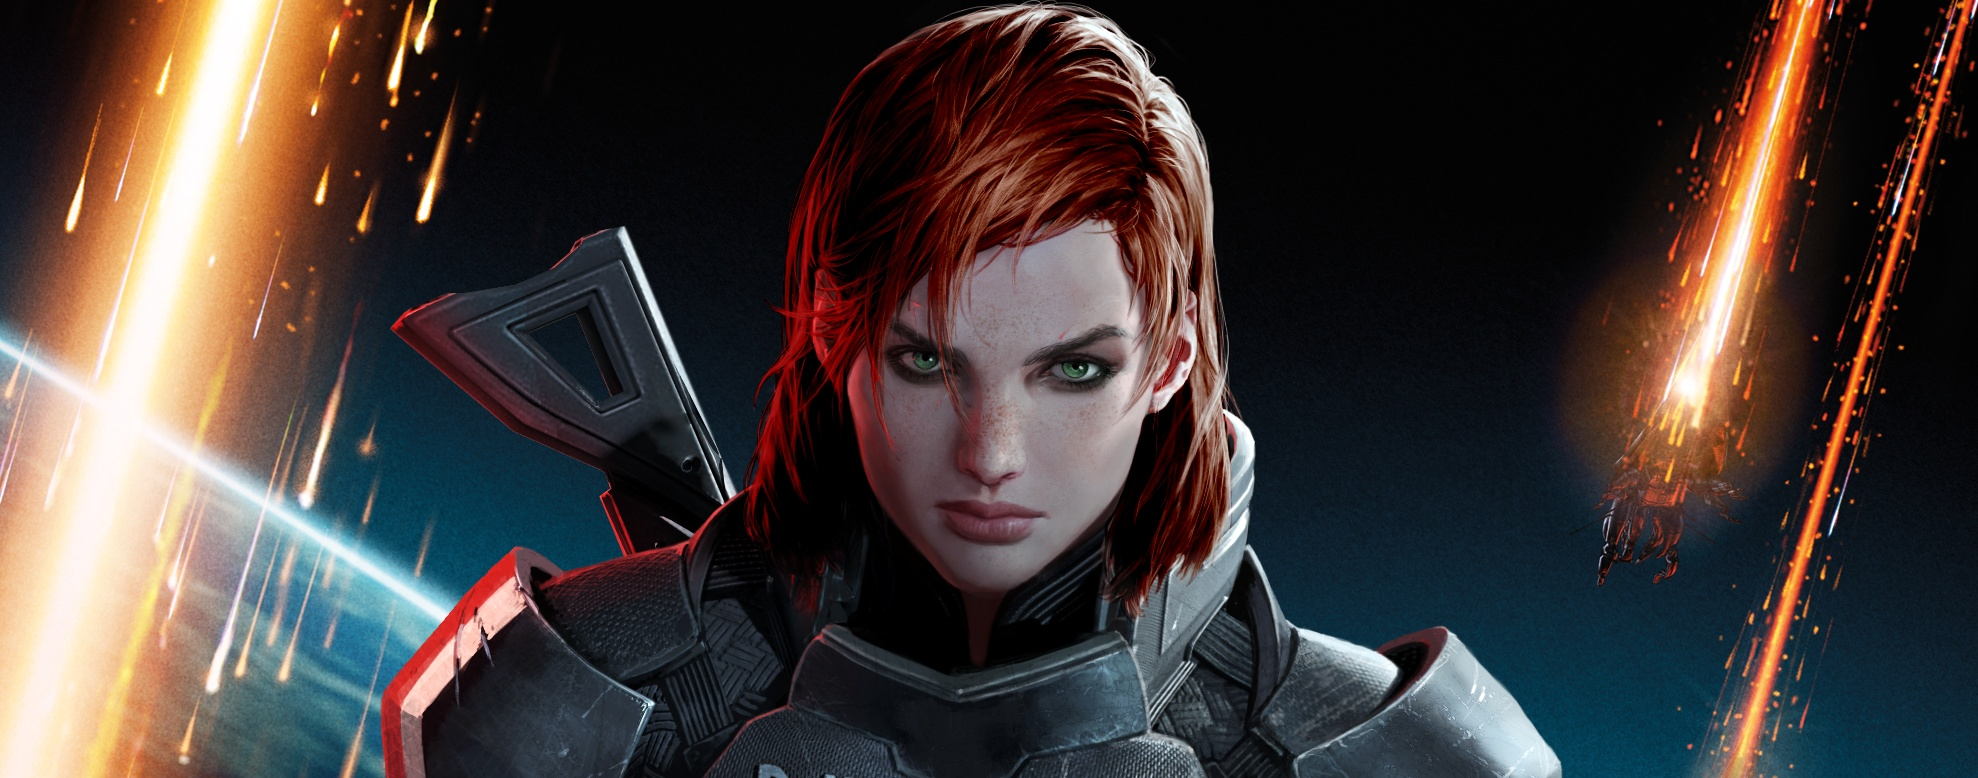 FemShep Promotional Art